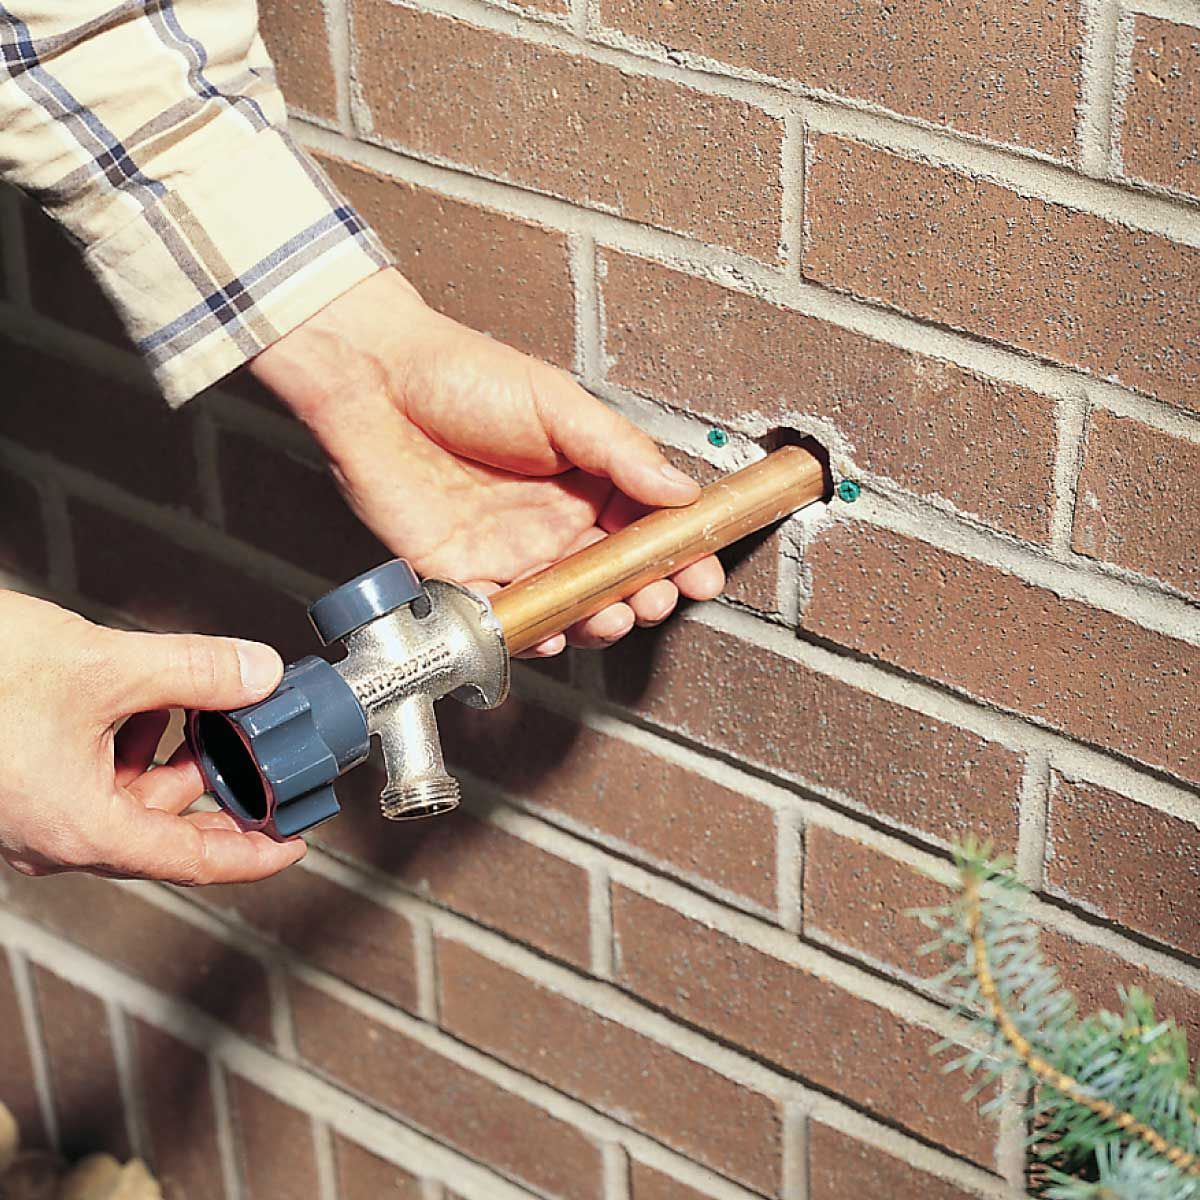 How To Install A Frost Proof Outdoor Faucet Faucet Repair Home